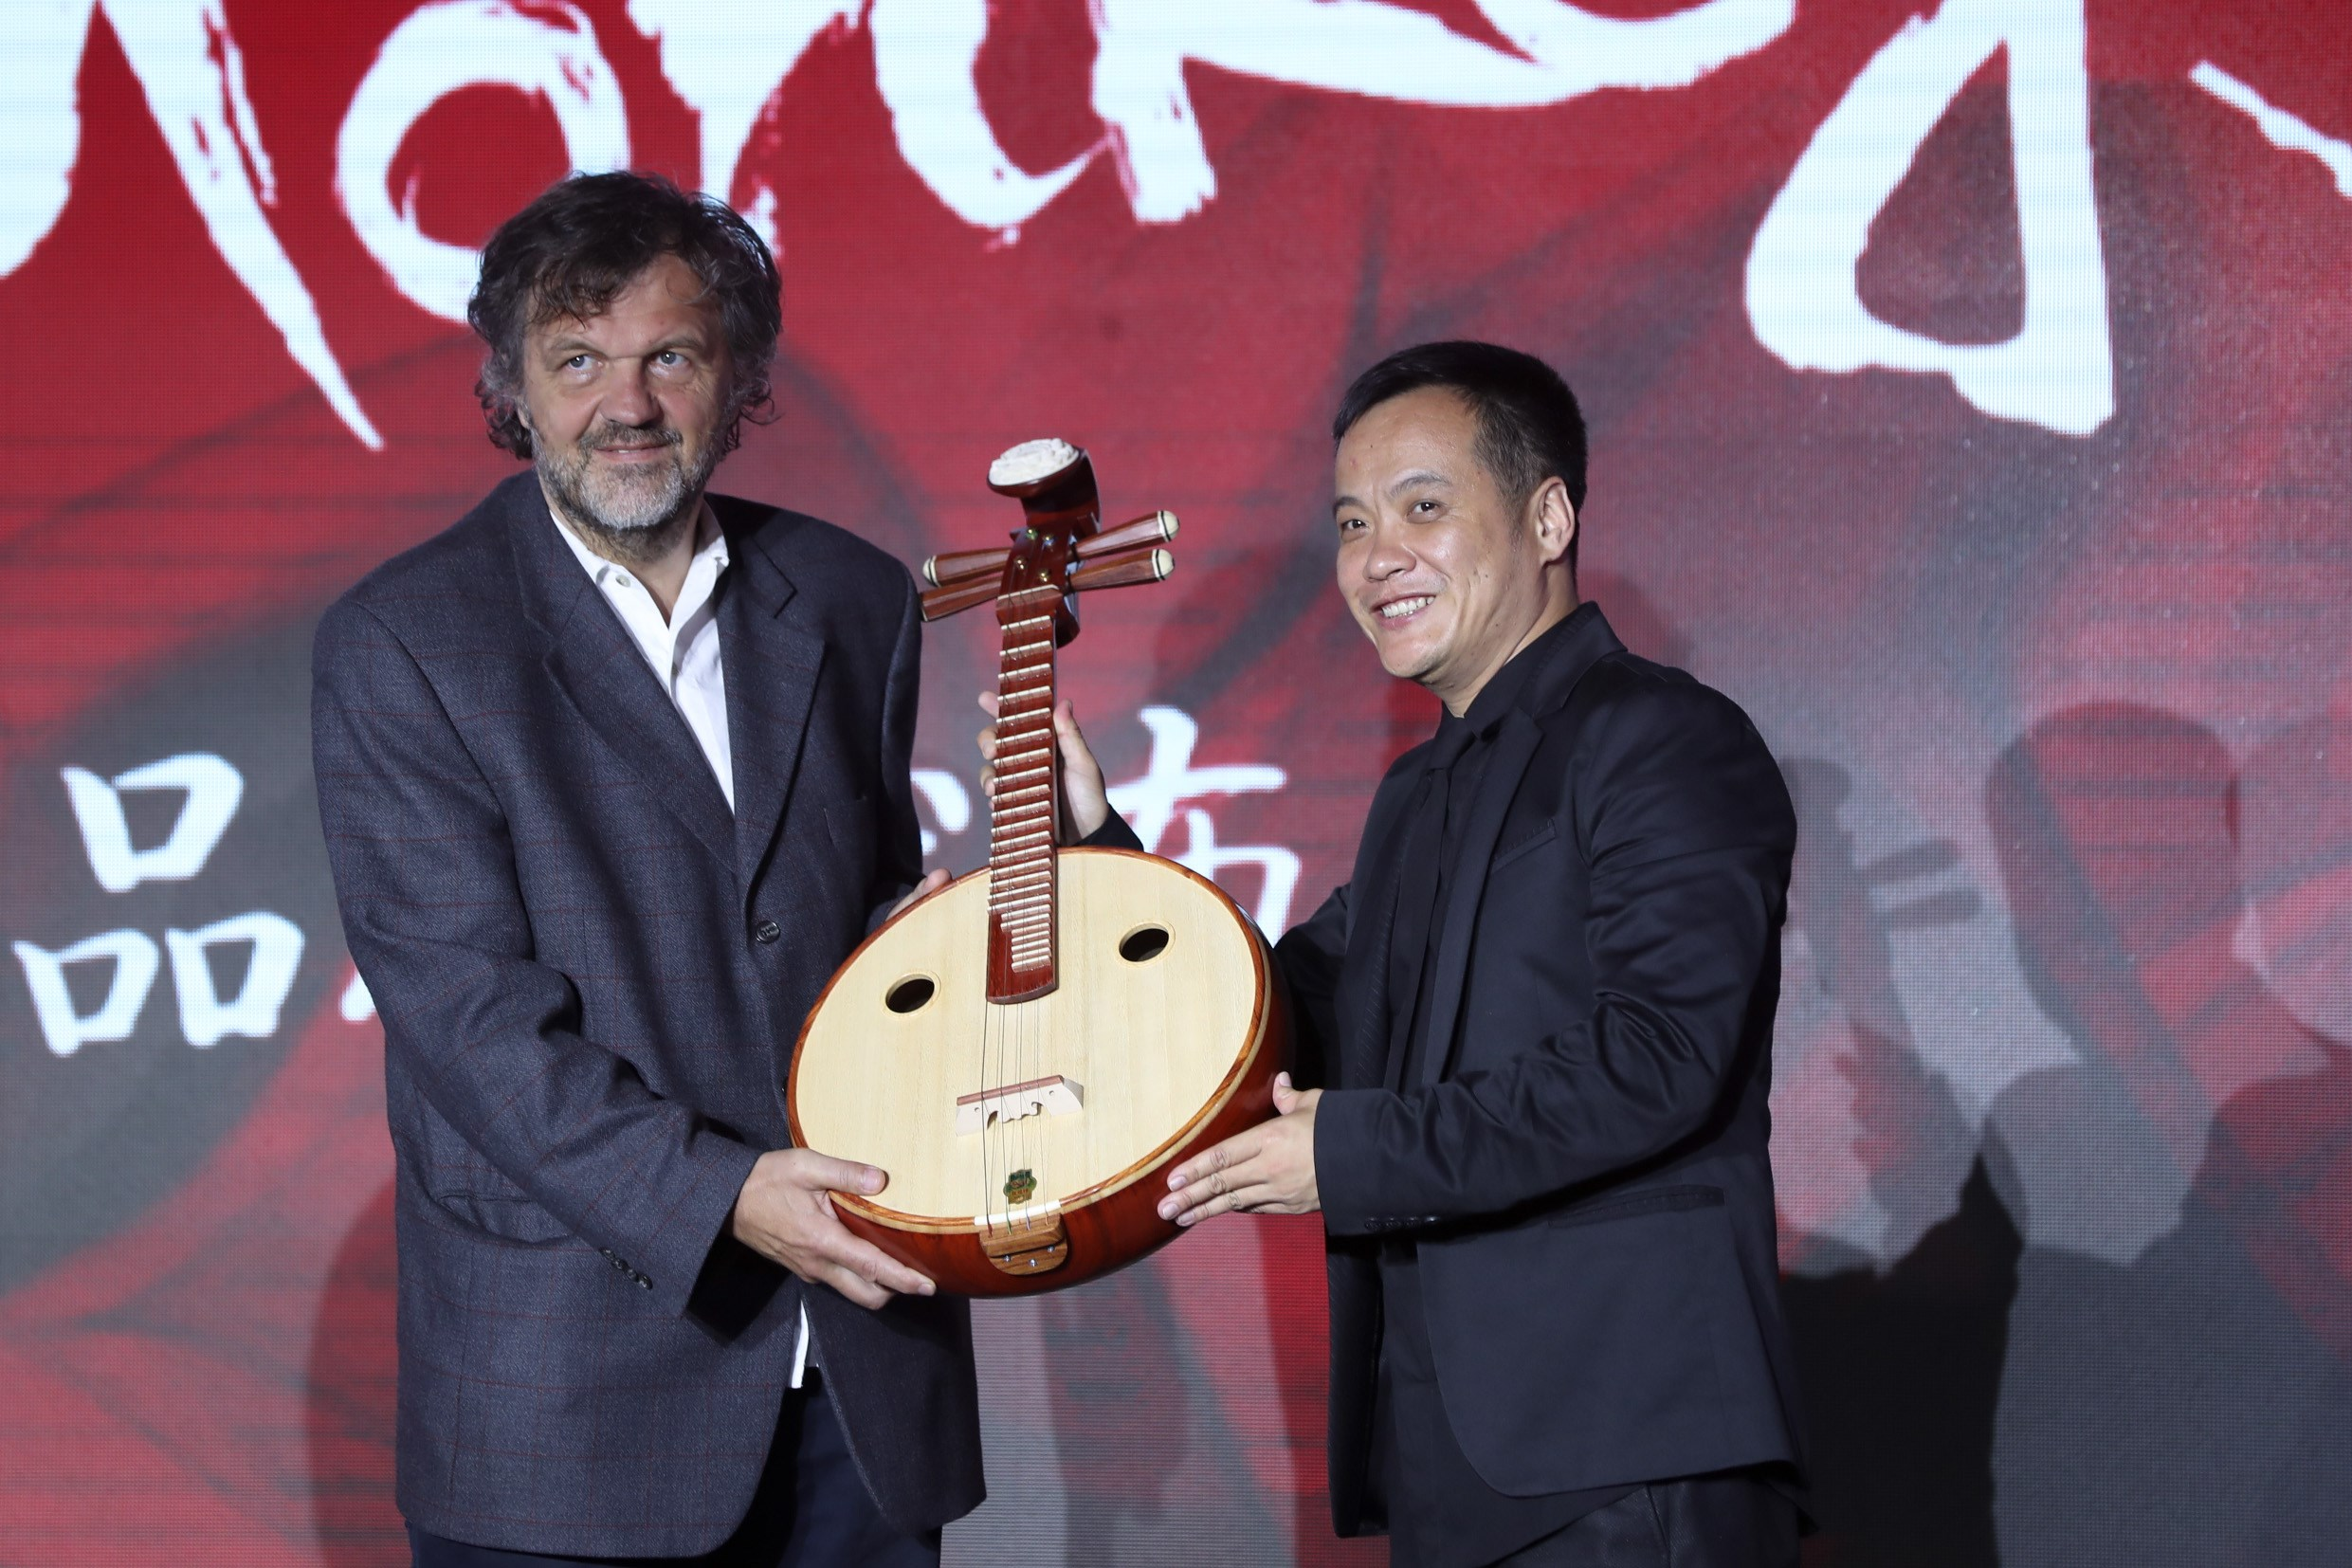 Director Ning Hao (right) gives a ruan, a traditional Chinese plucked string instrument, to Serbian filmmaker Emir Kusturica at a press conference of the Dirty Monkeys Film Corporation. -- Dong Jun